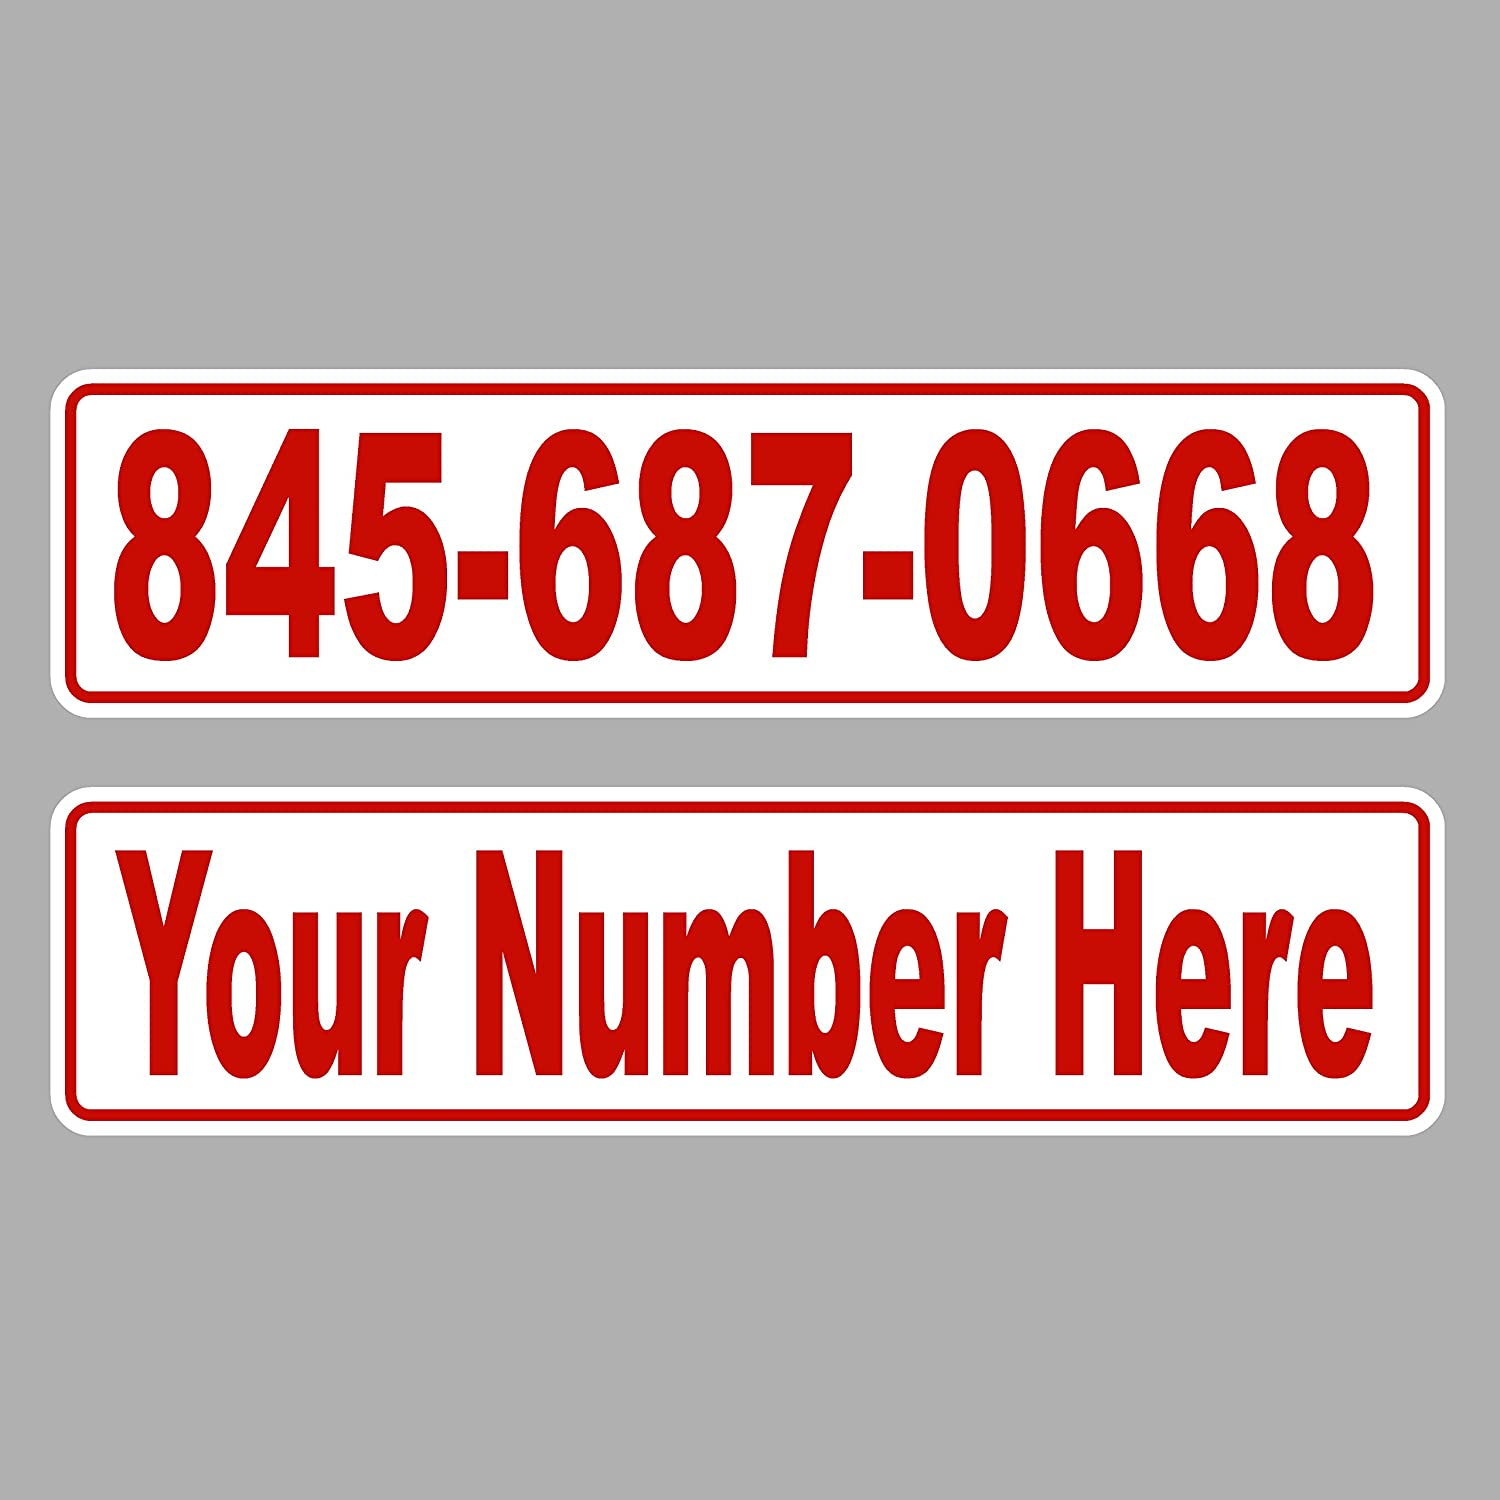 Designer Signs Custom Reflective Magnets - Your Phone Number or Other Text - Sold Individually